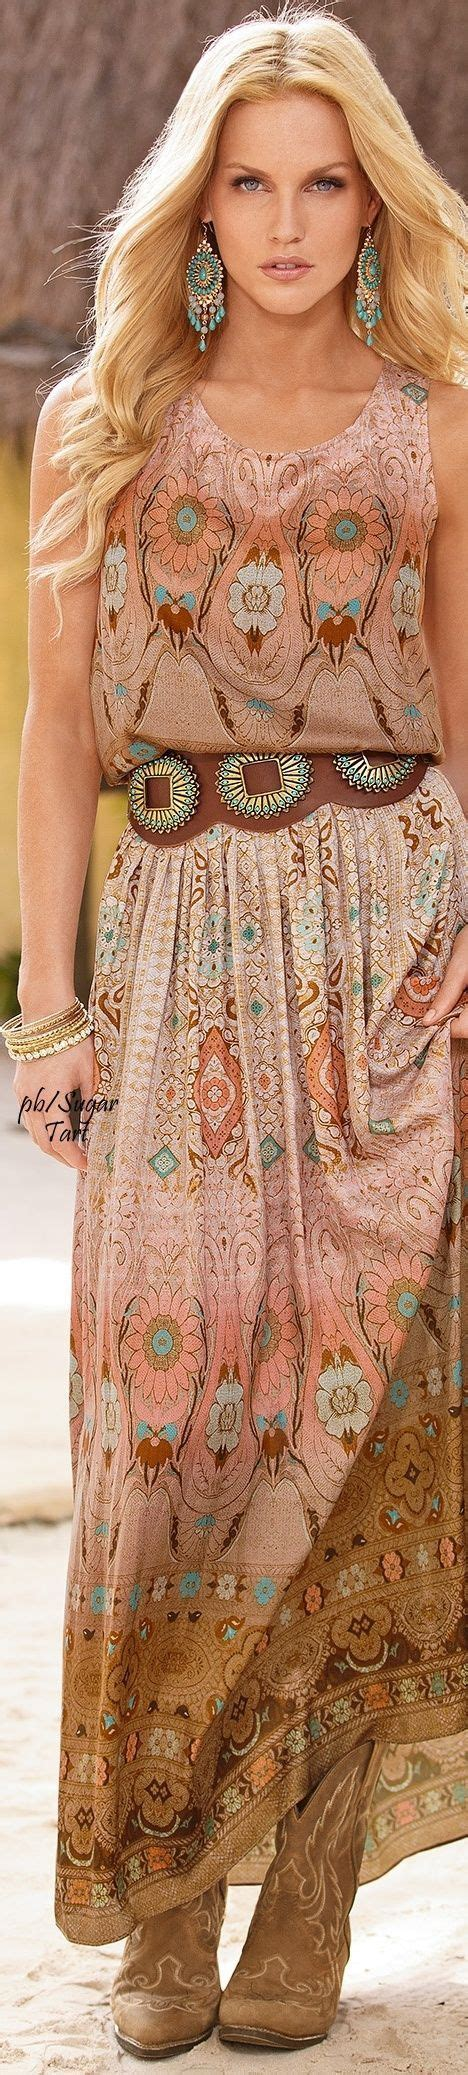 Sr Lea Ethnic Boho Dress this boho inspired maxi dress use the code fspinterest to get 5 on bohemian chic